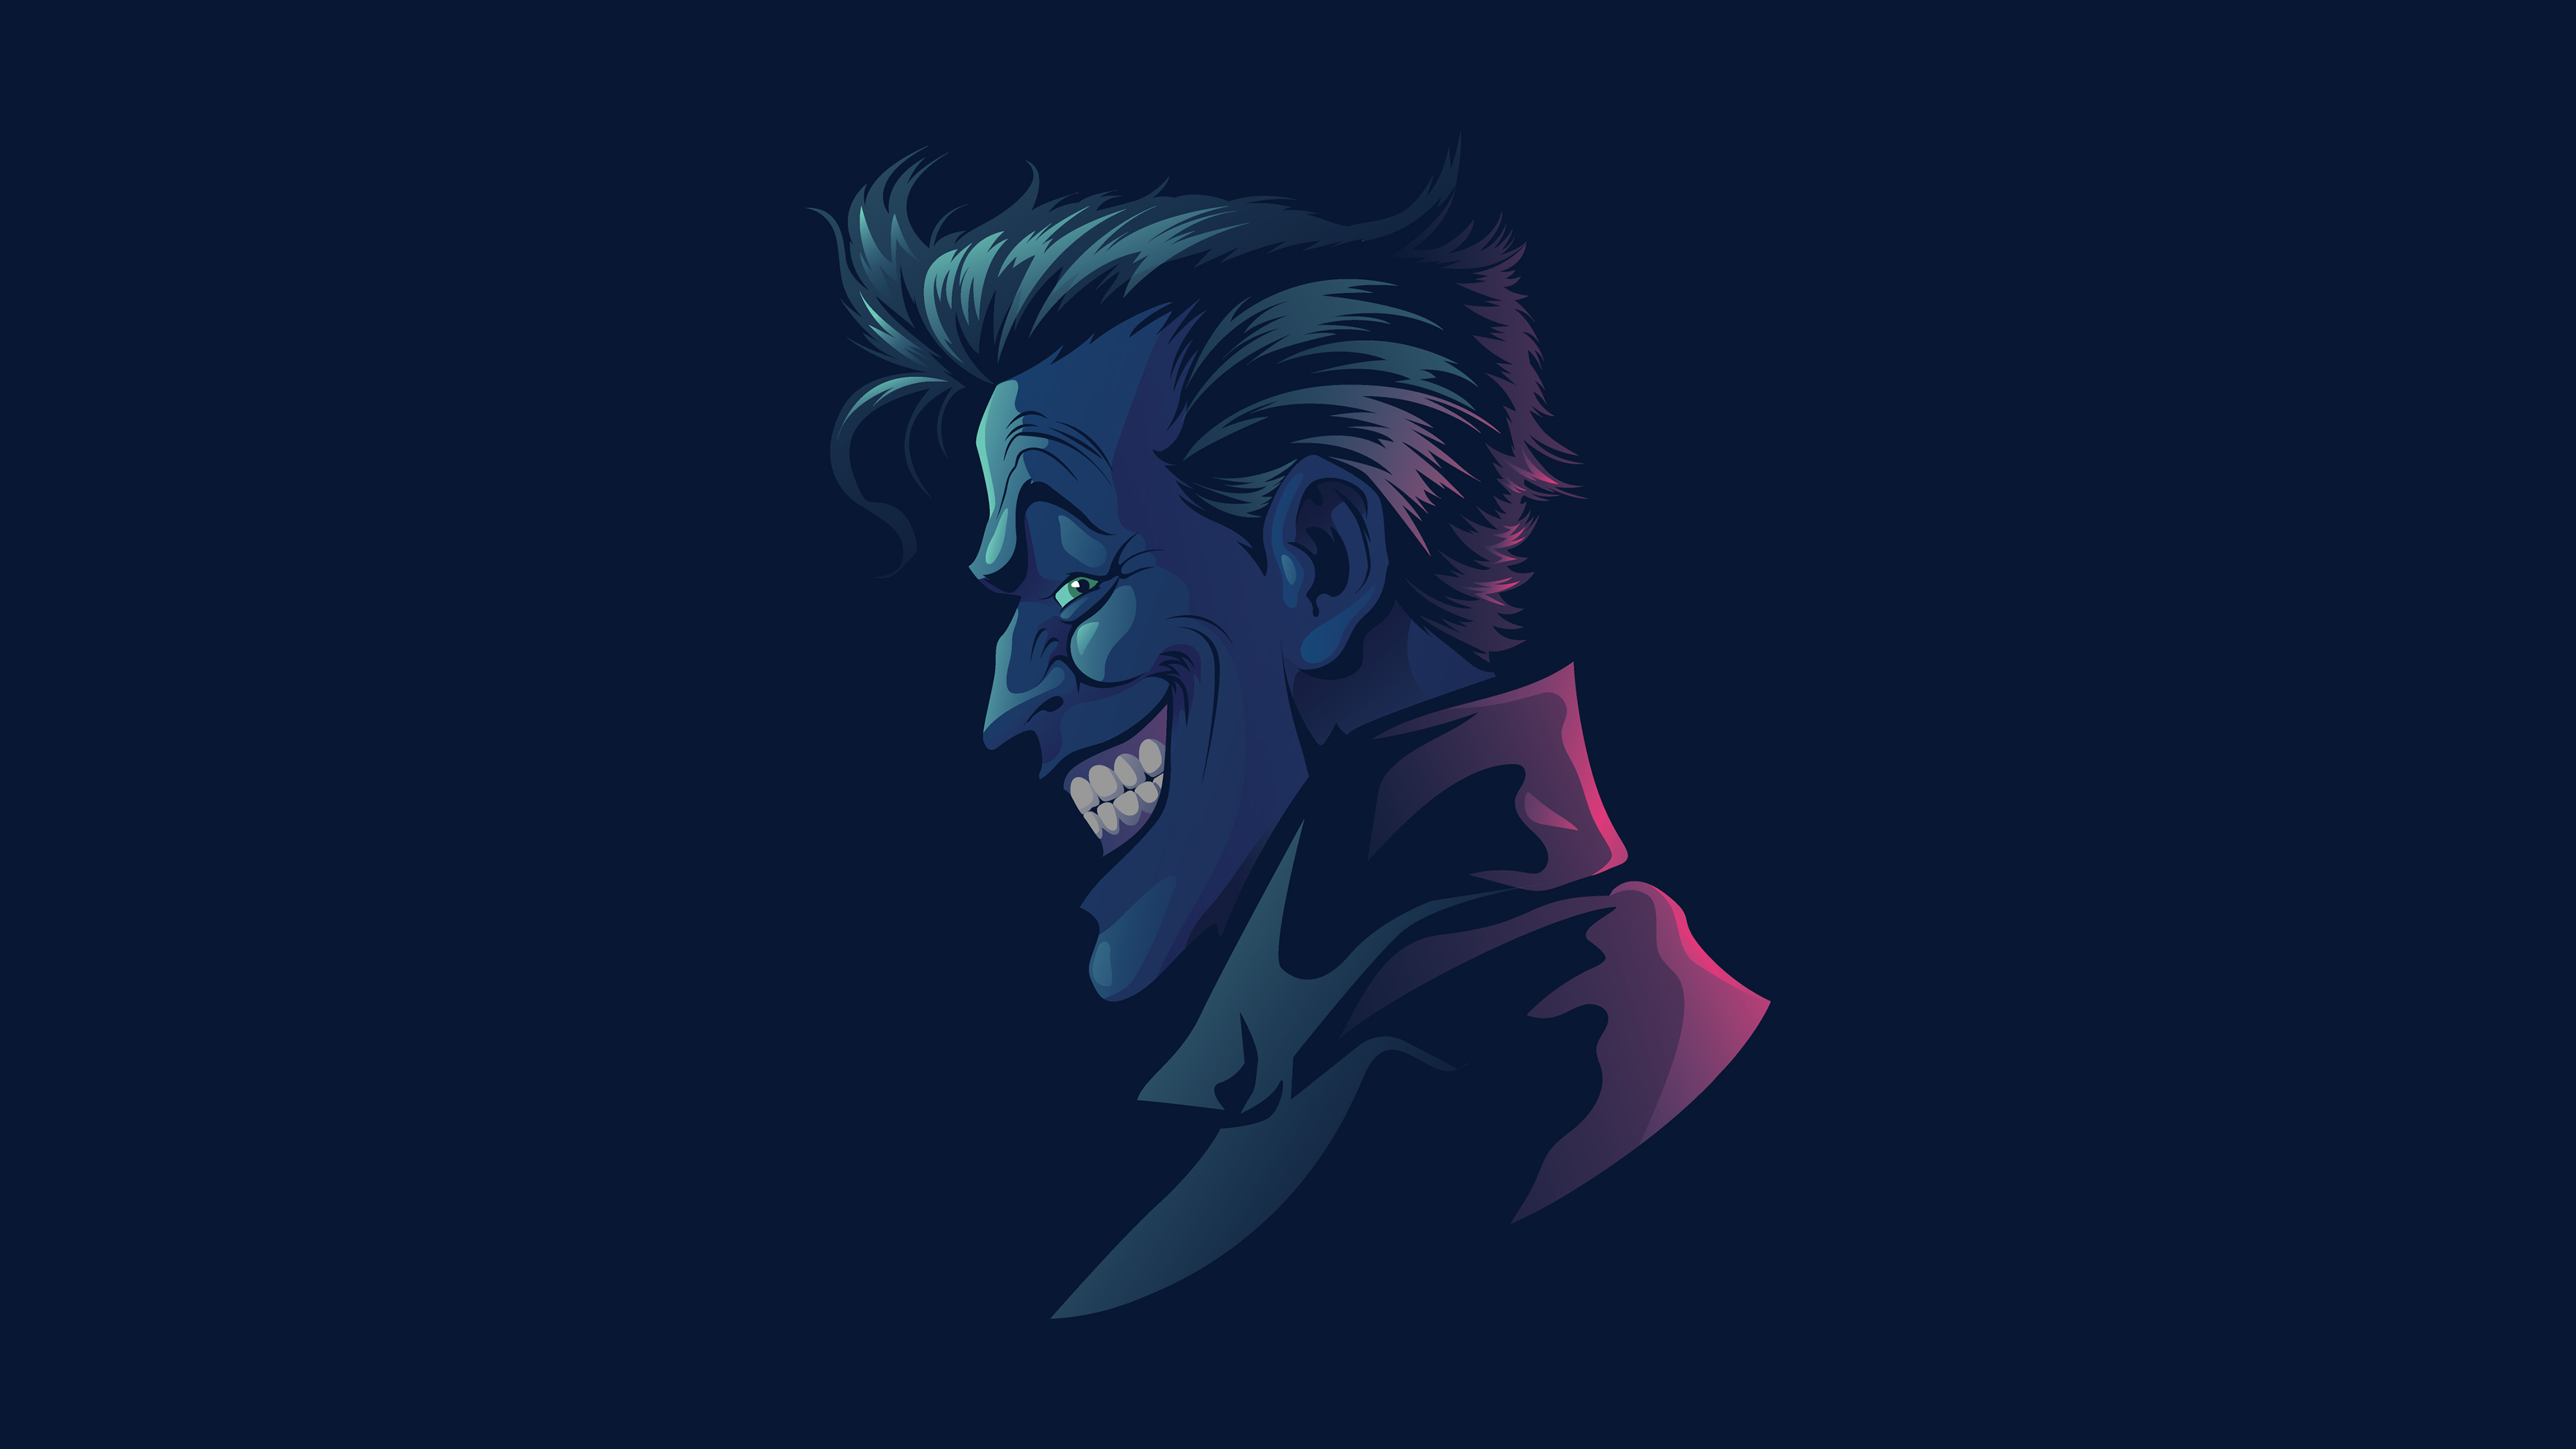 Joker Joker Minimalist Wallpaper 4k Ultra Hd Id 3130